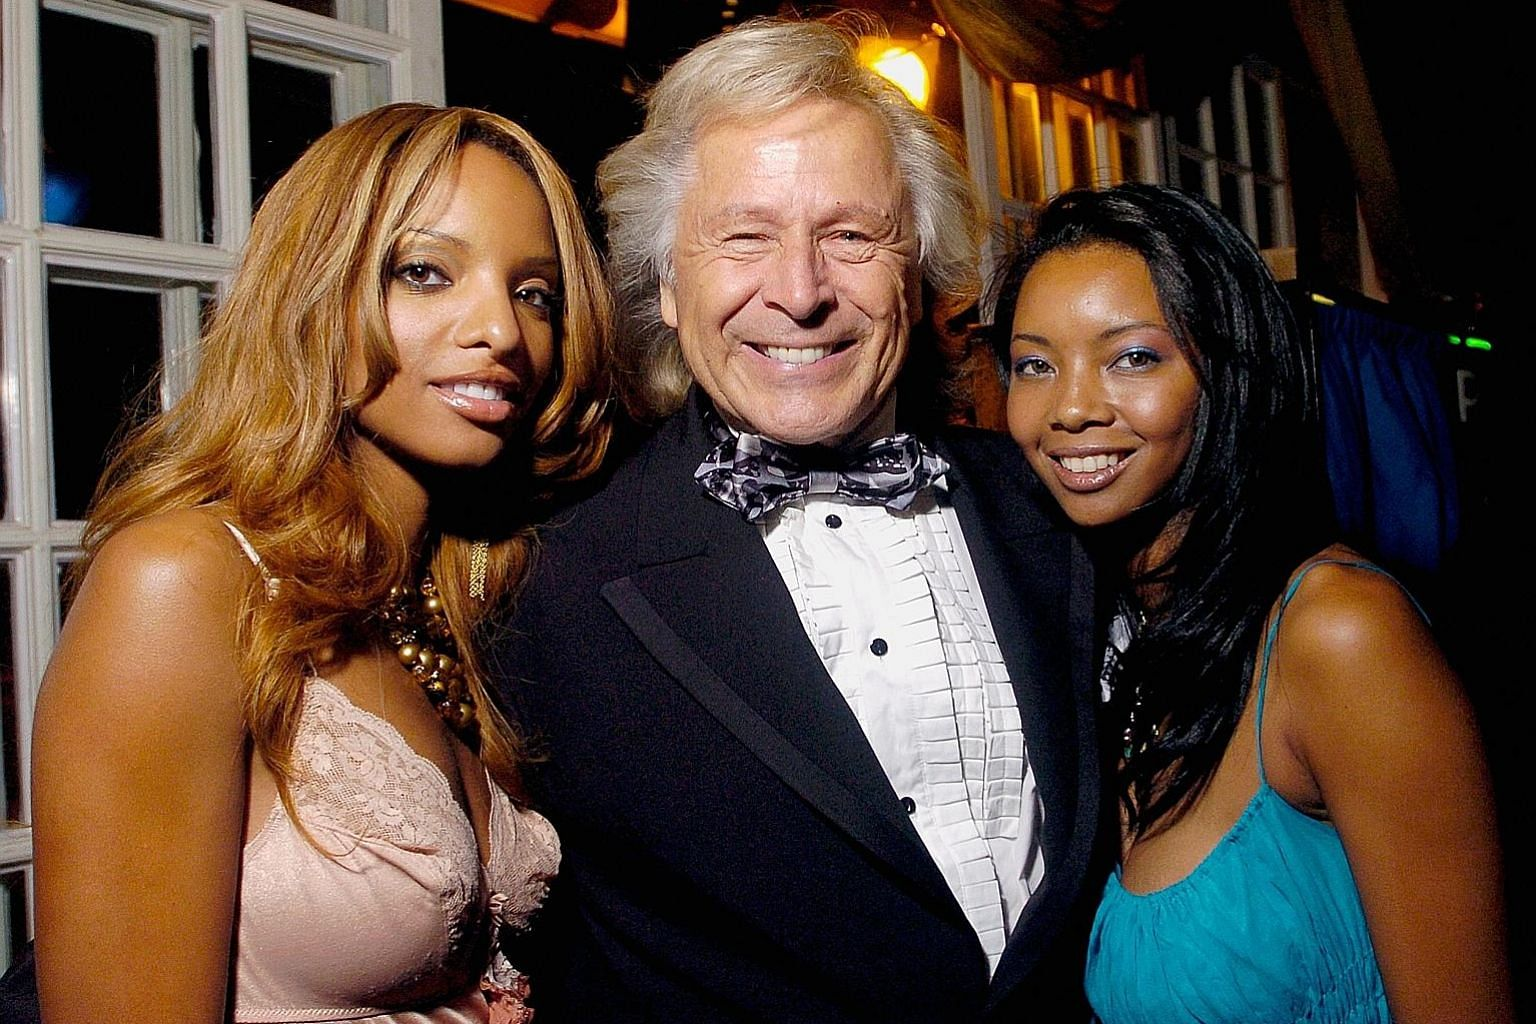 The entrance gate of Mr Nygard's extravagant Nygard Cay property in Nassau, Bahamas. Dozens of women and former employees said that alleged rape victims were lured to his Bahamian home by the prospect of modelling jobs or a taste of luxury. Lawyers a